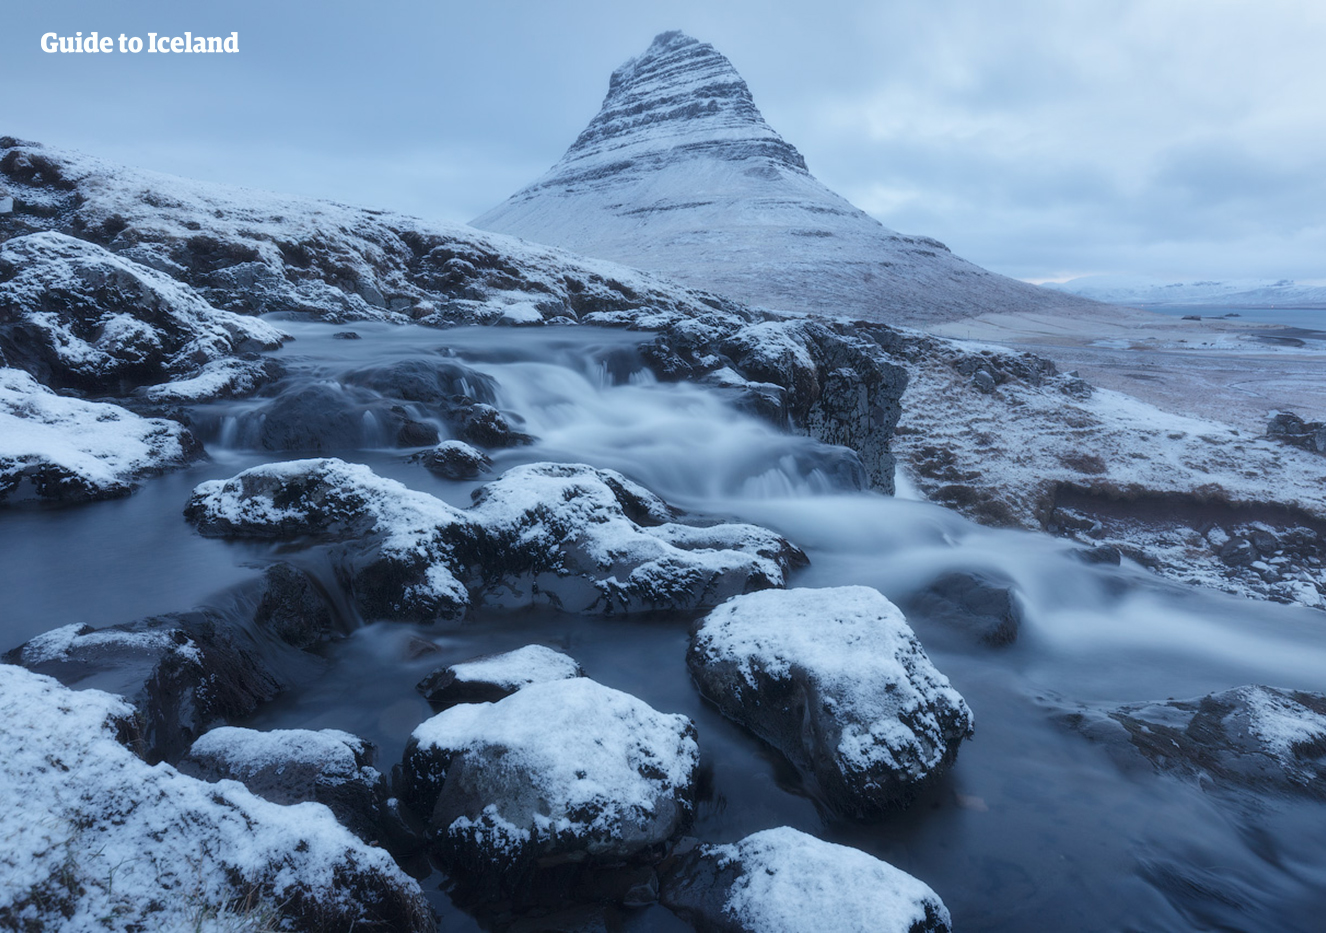 Kirkjufell, the Church Mountain, stands with a dusting of snow in winter.